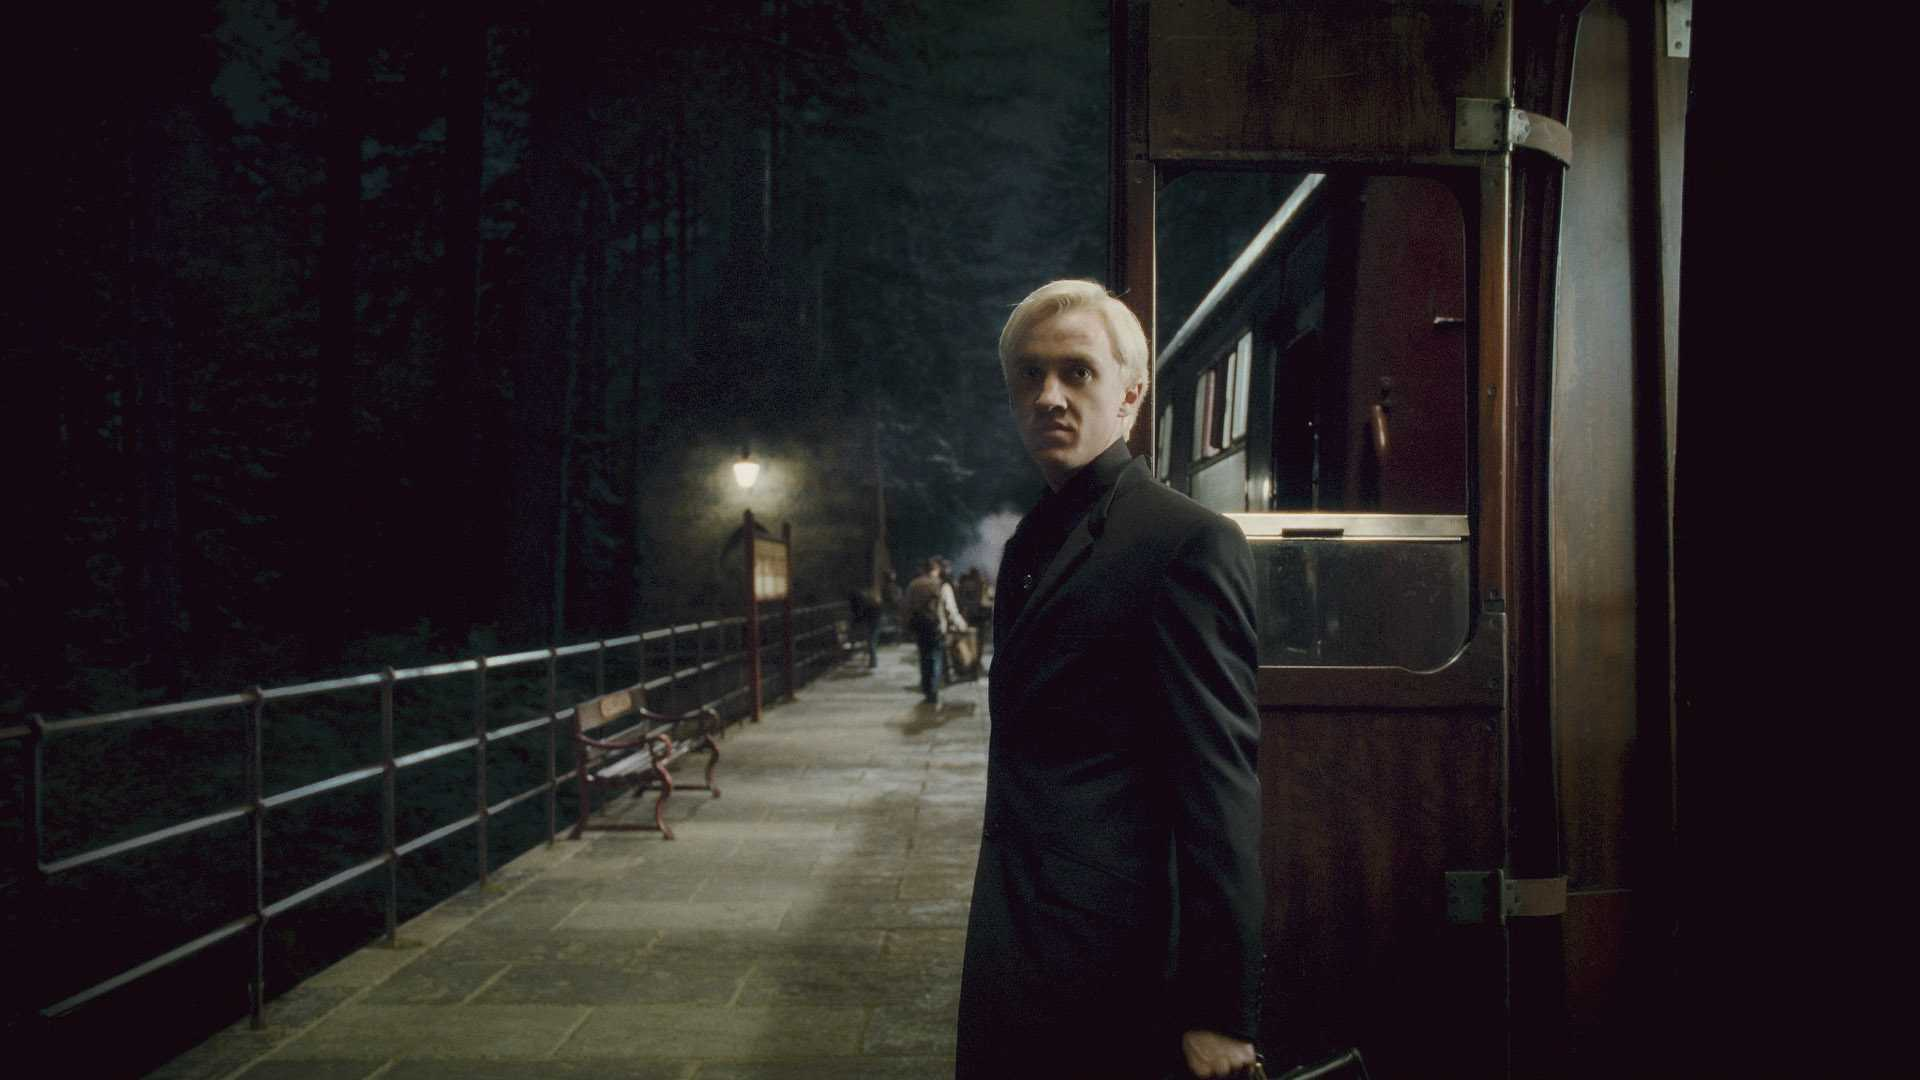 harry and draco images - photo #41